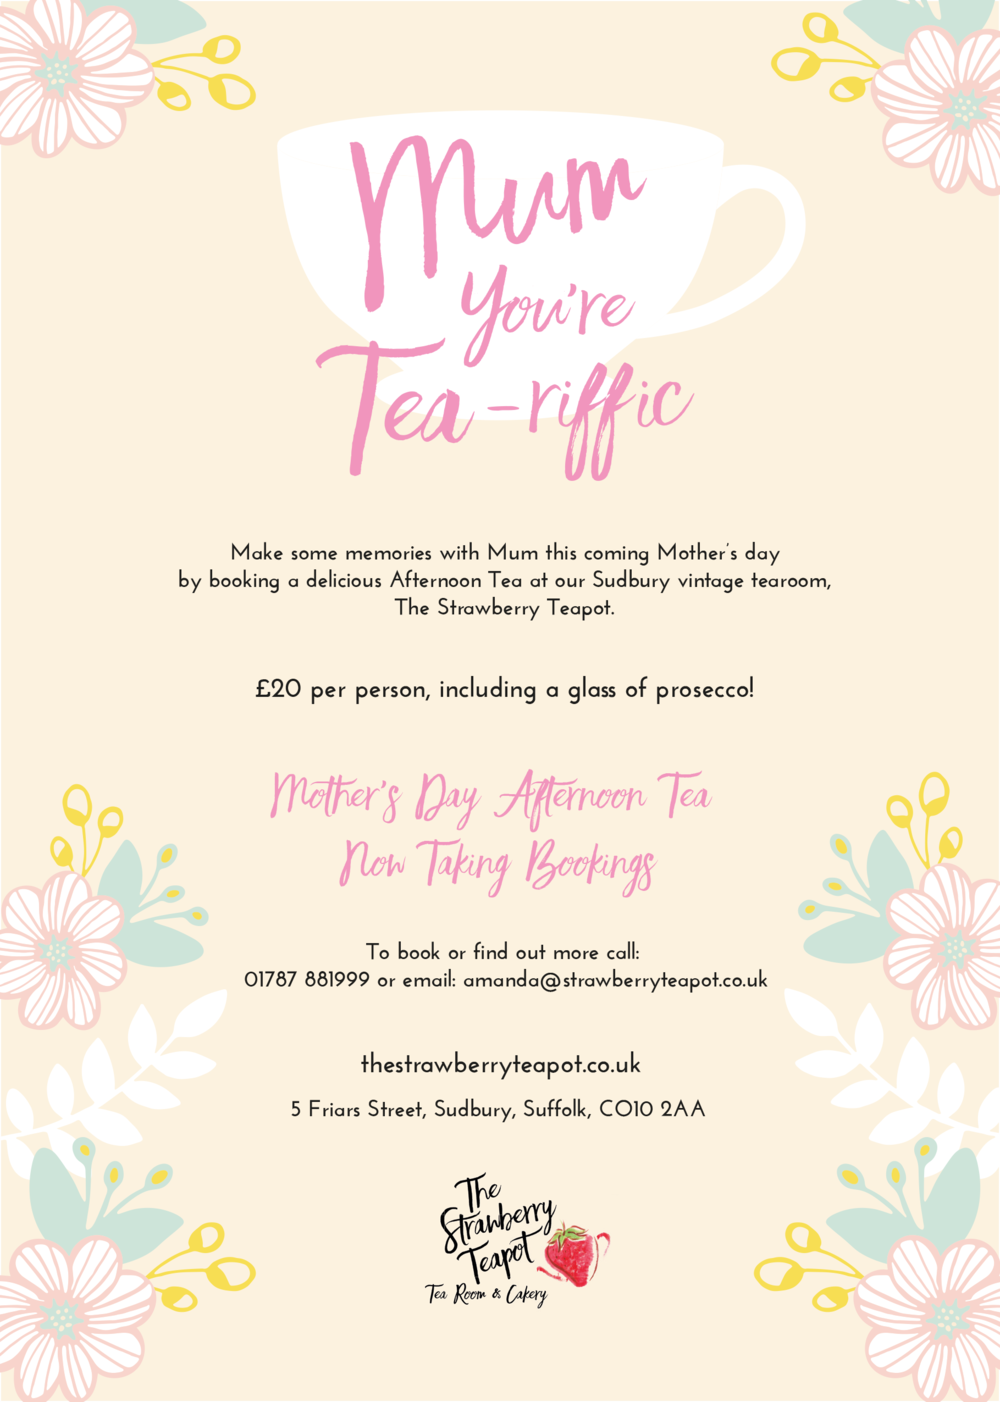 Strawberry-Teapot-Mother's-Day_Flyer.png